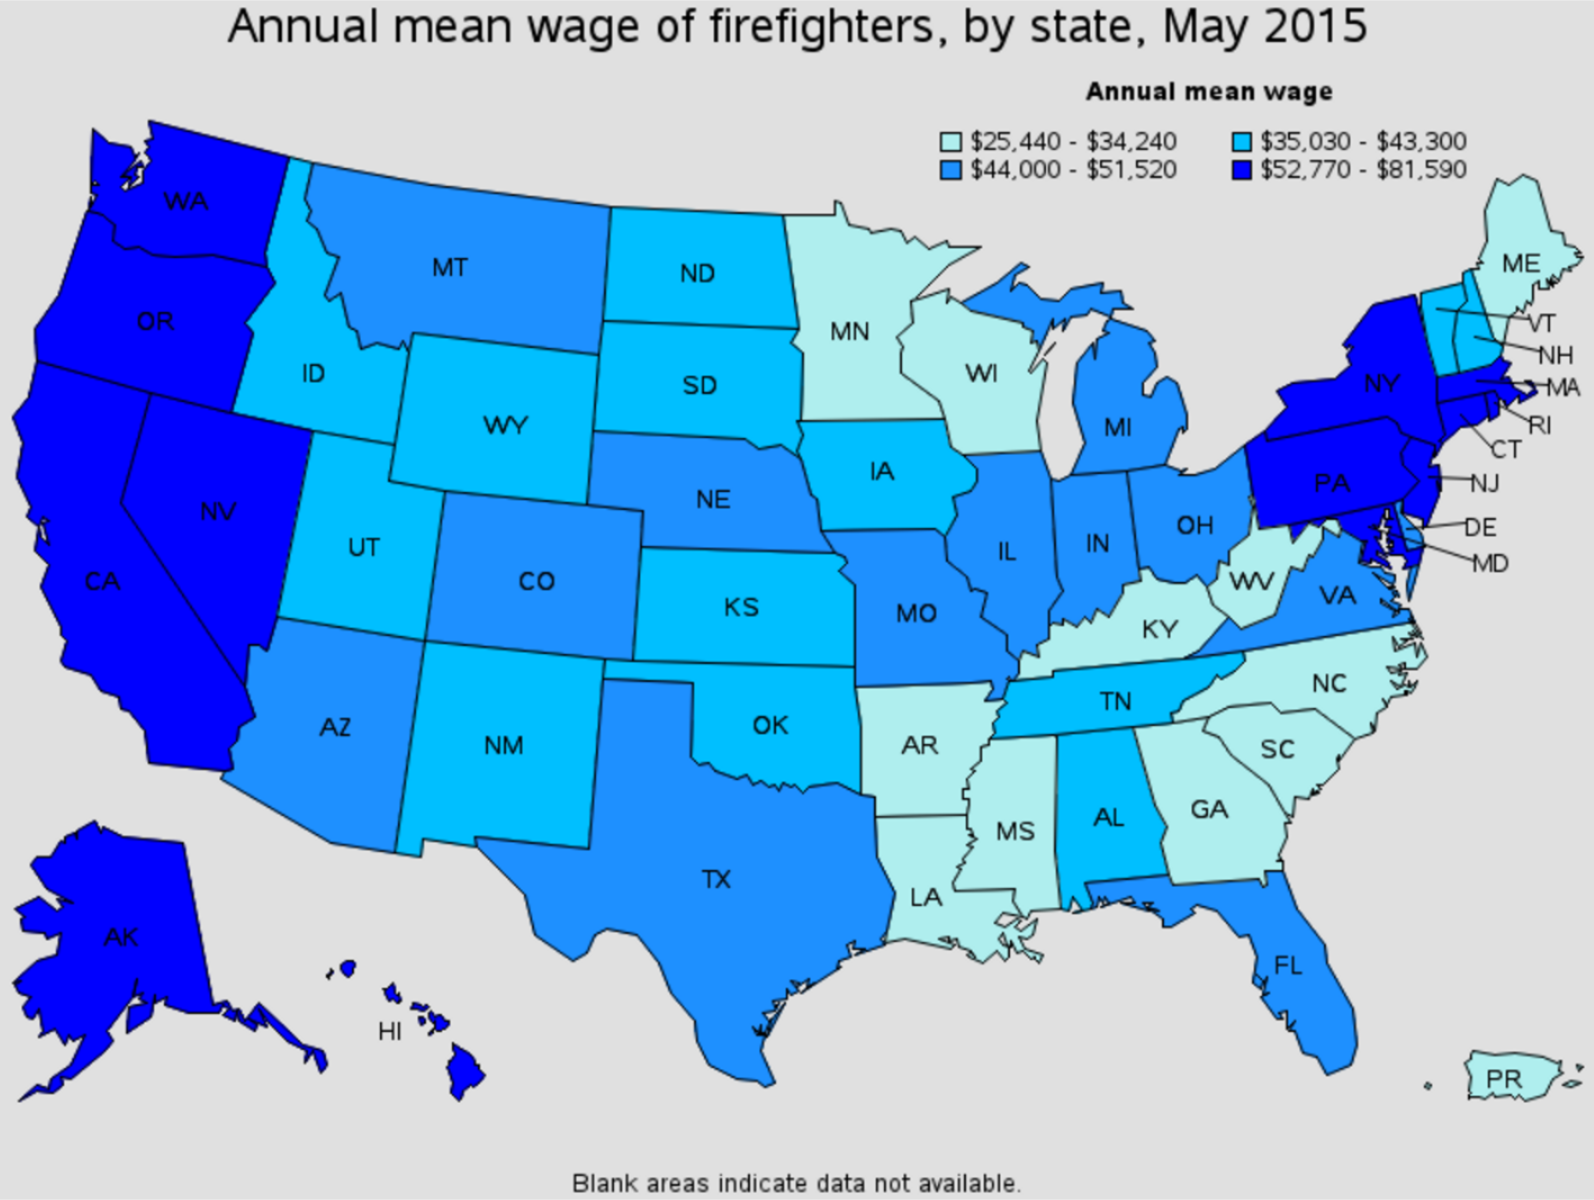 firefighter average salary by state Omaha Nebraska